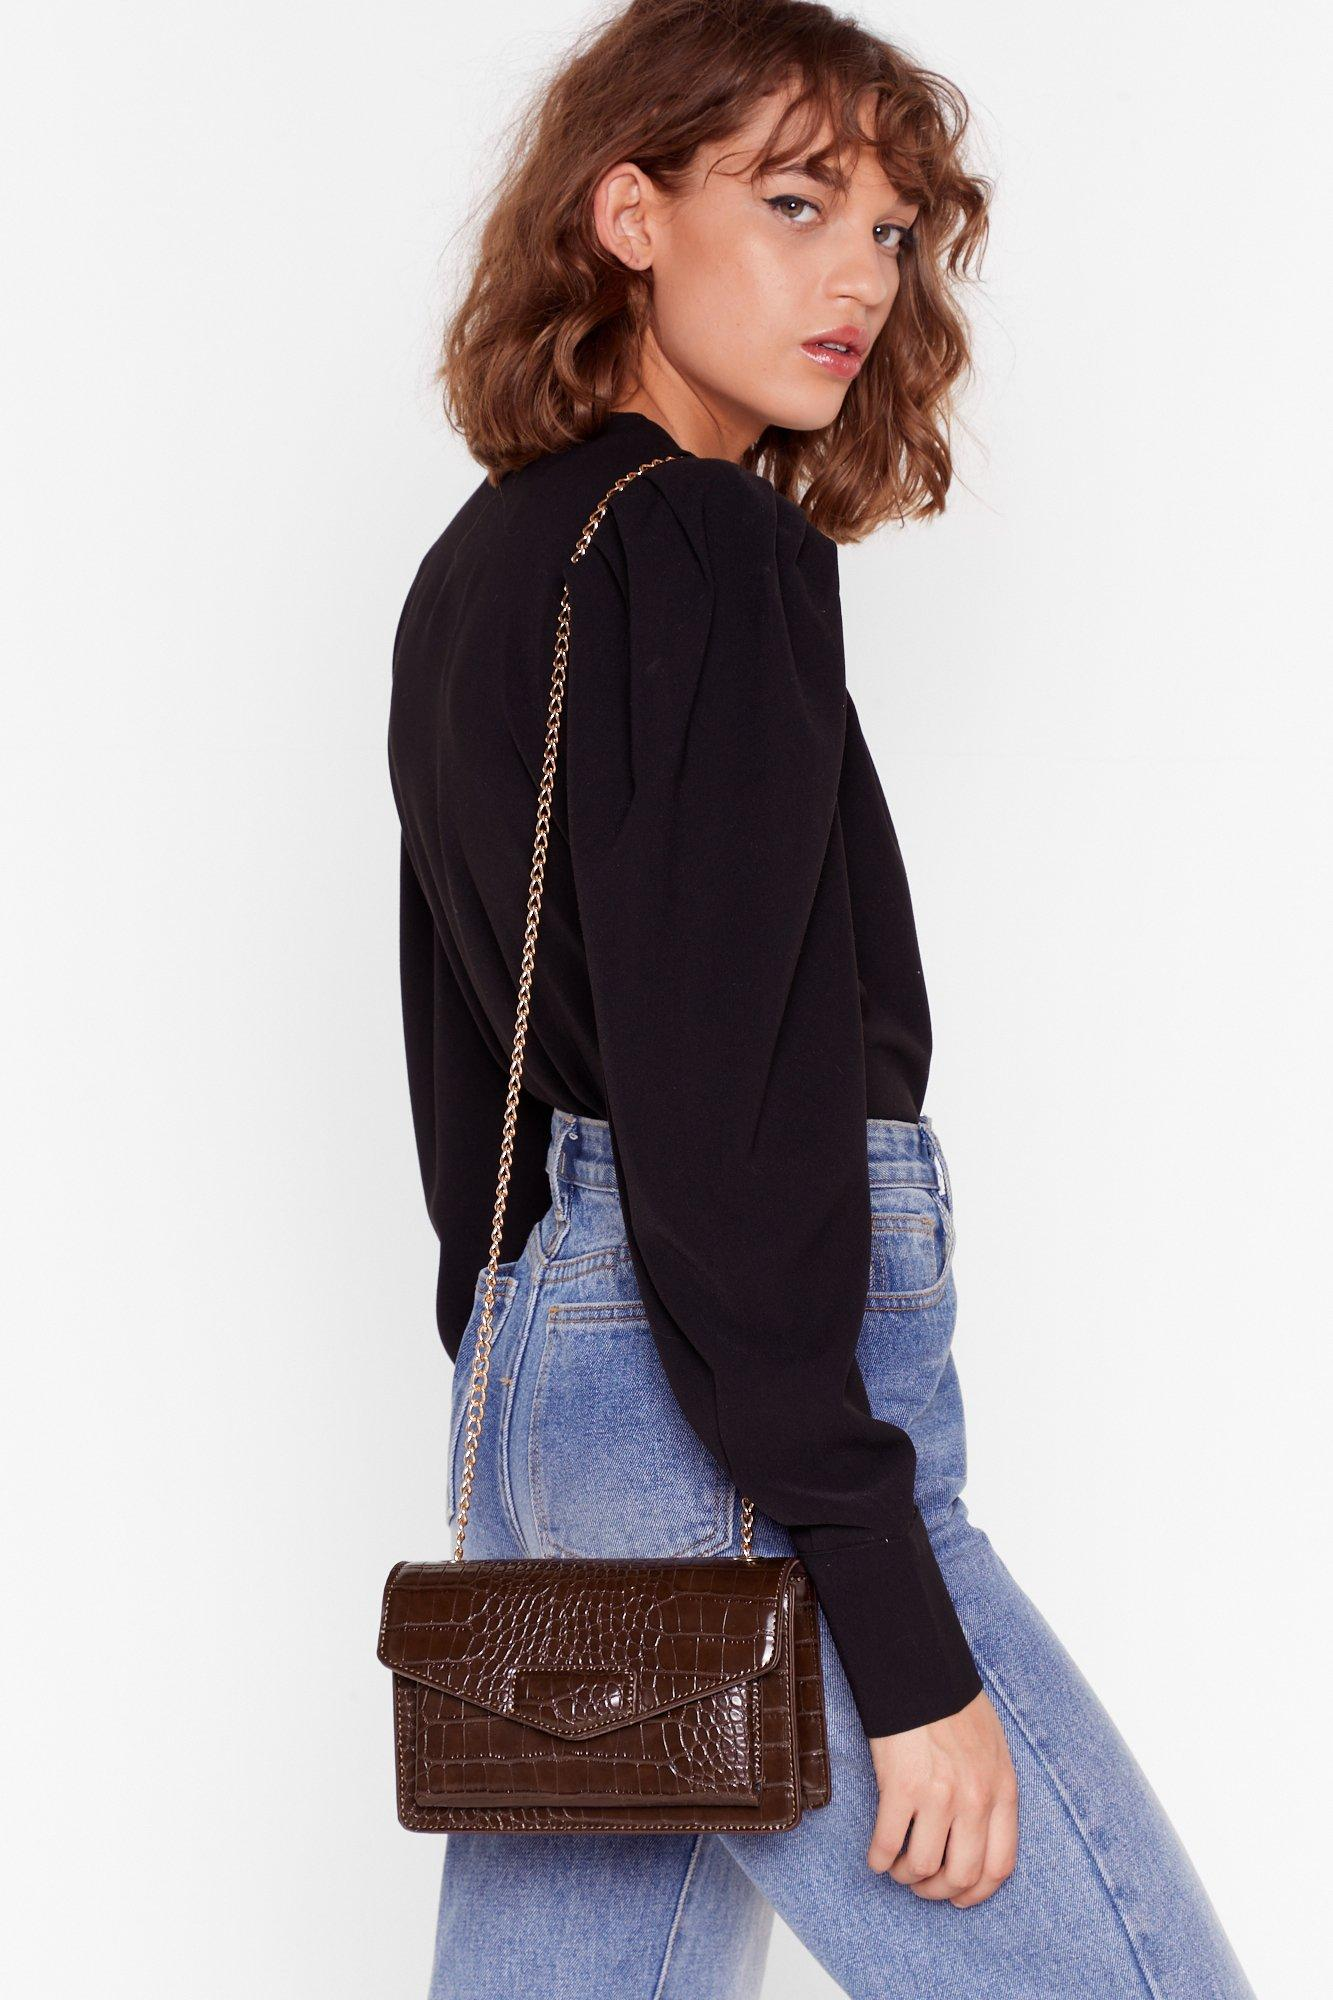 Image of WANT Croc the Beat Chain Crossbody Bag